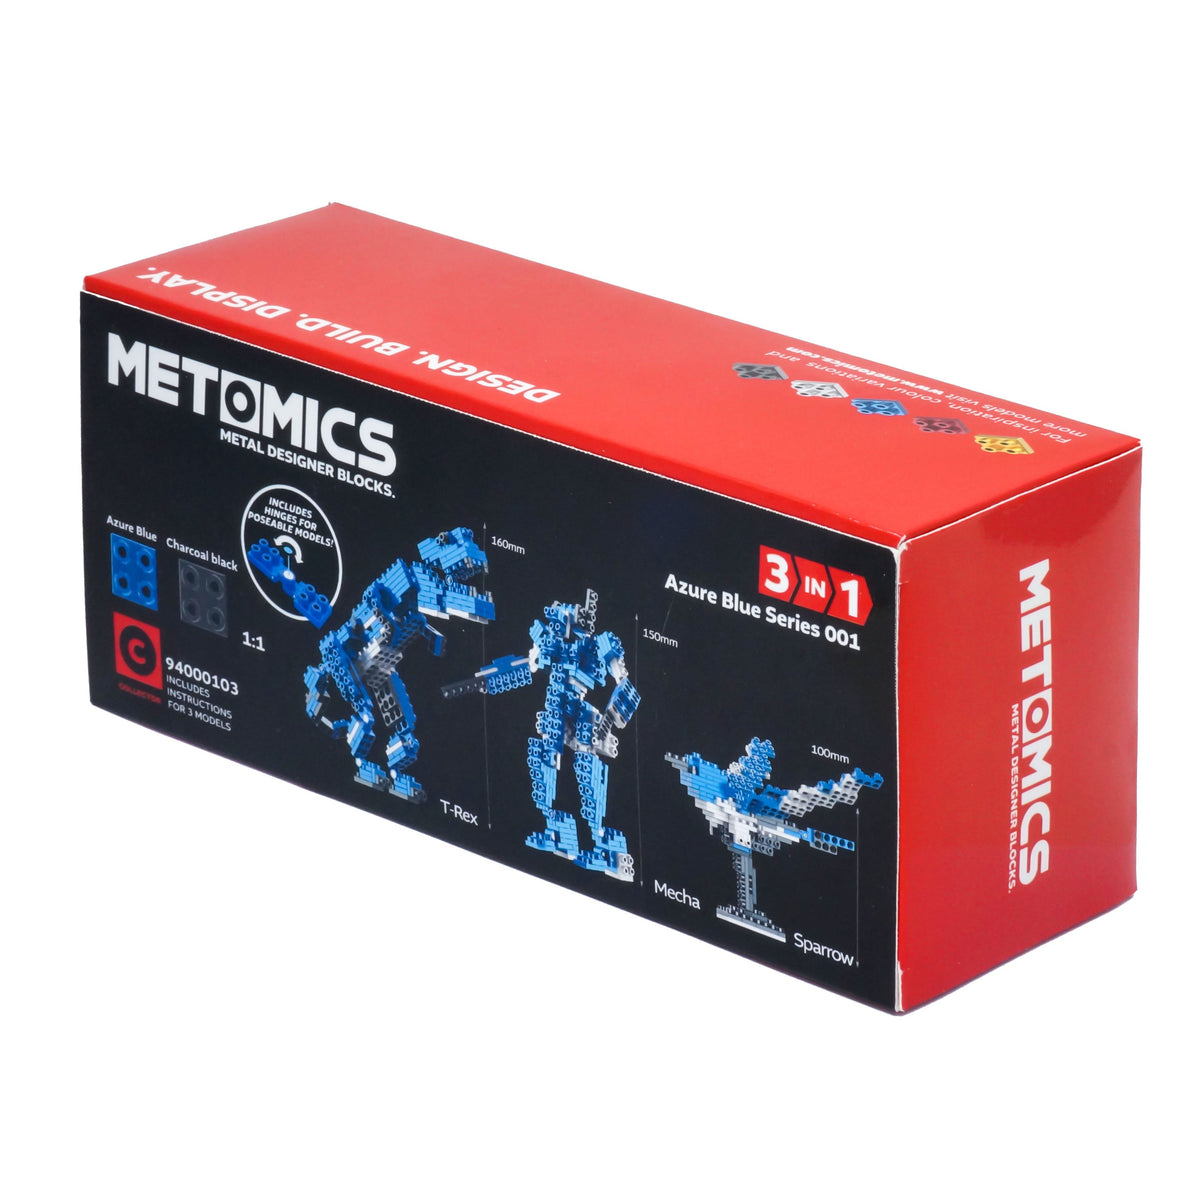 Metomics Mecha 3-IN-1 290 Designer Aluminium Blocks